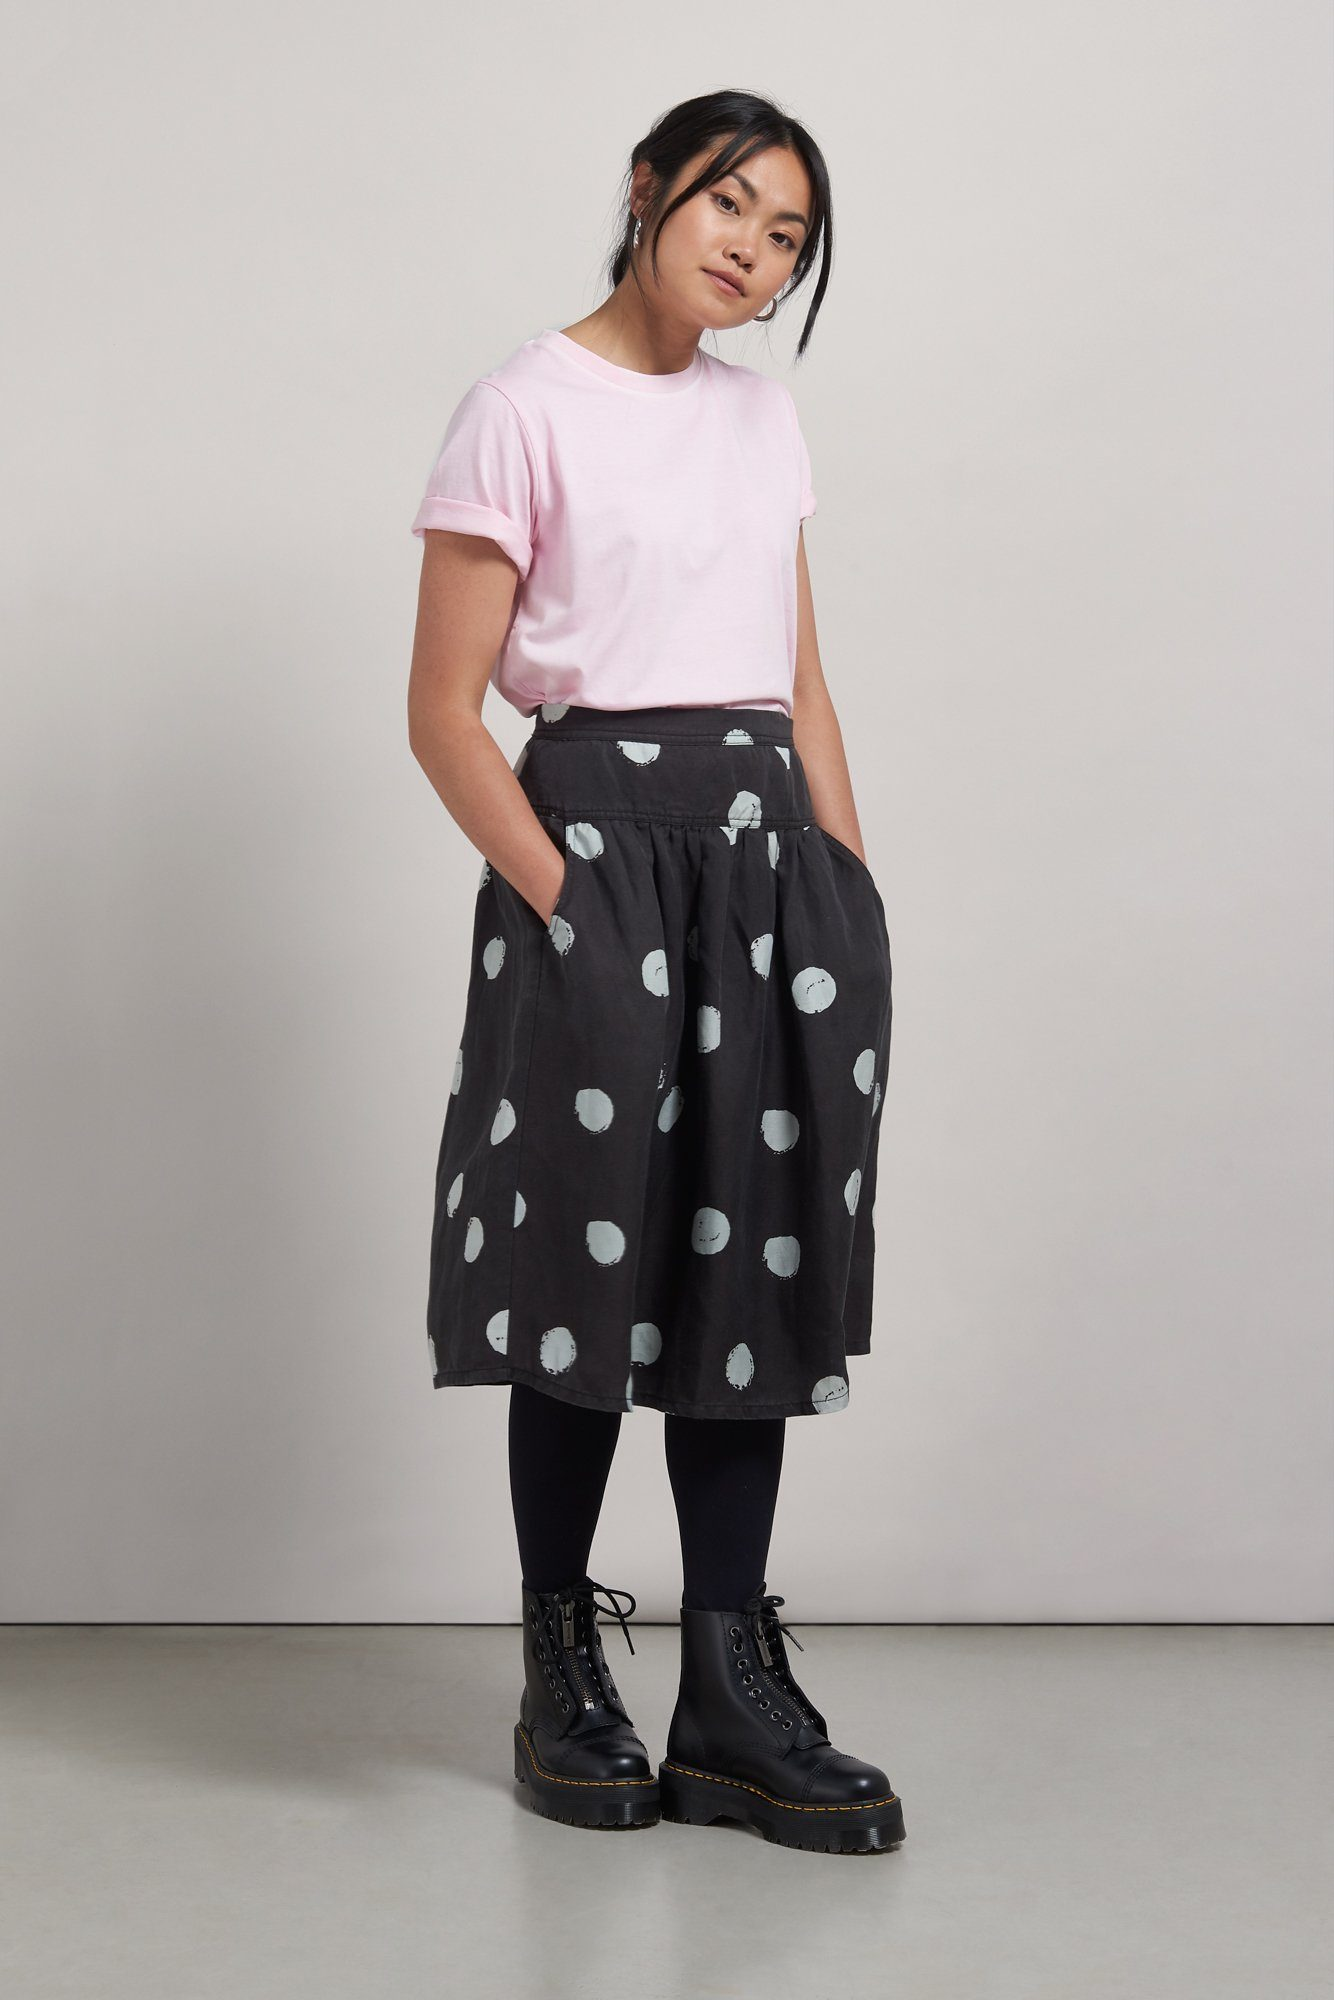 Skirt - KUSAMA Tencel Linen Skirt